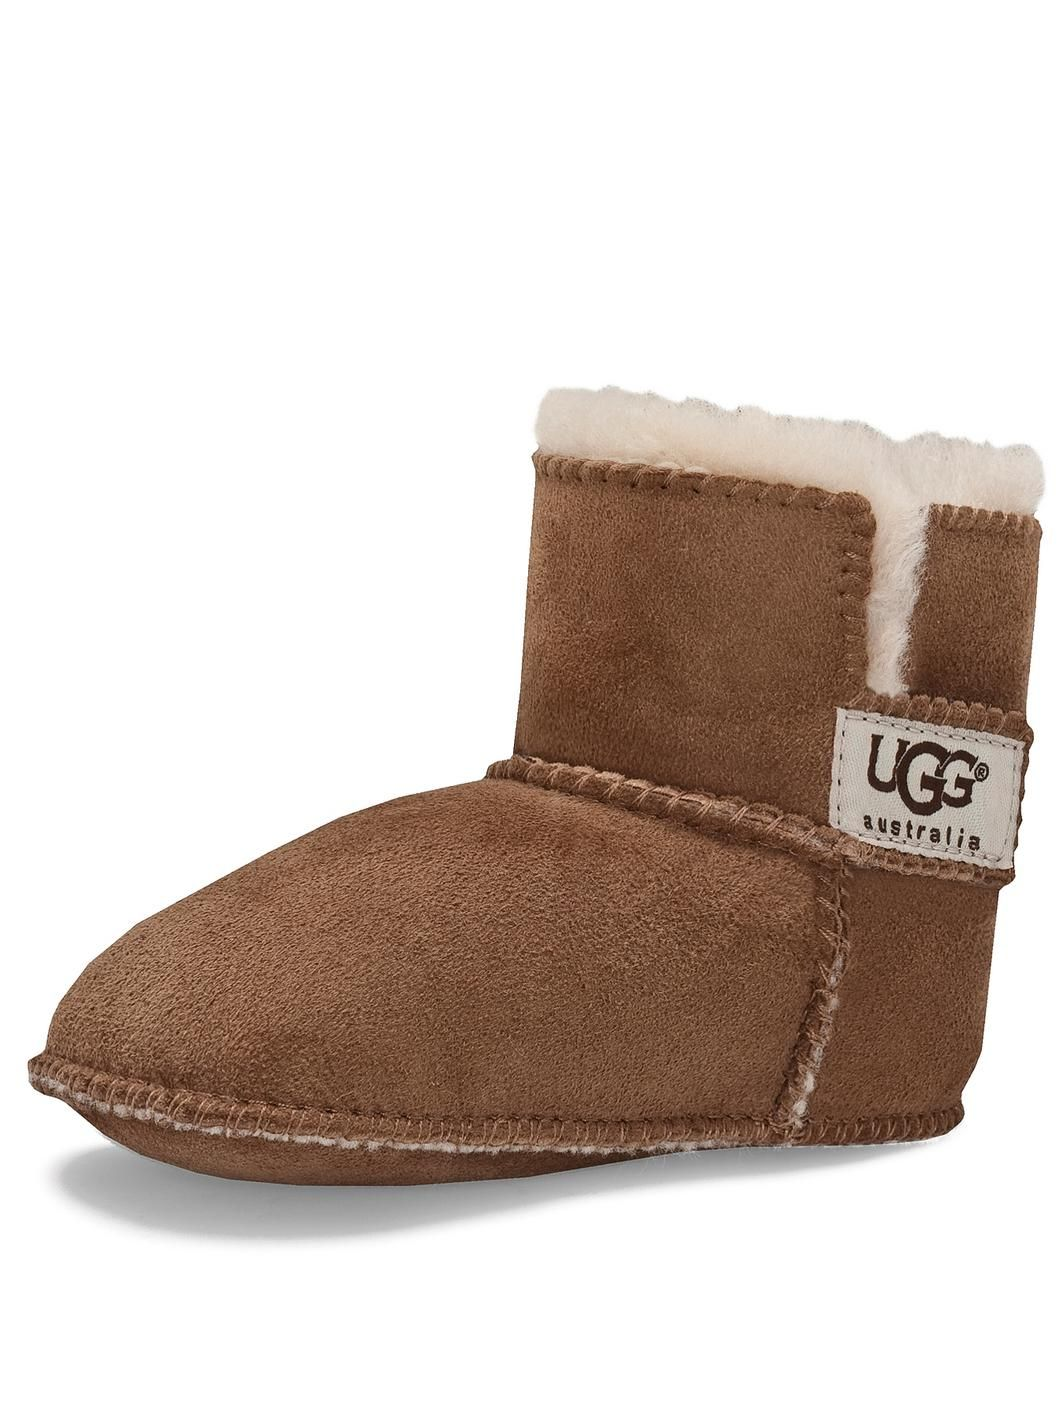 Erin Baby Booties, http://www.very.co.uk/ugg-australia-erin-baby -booties/837536212.prd